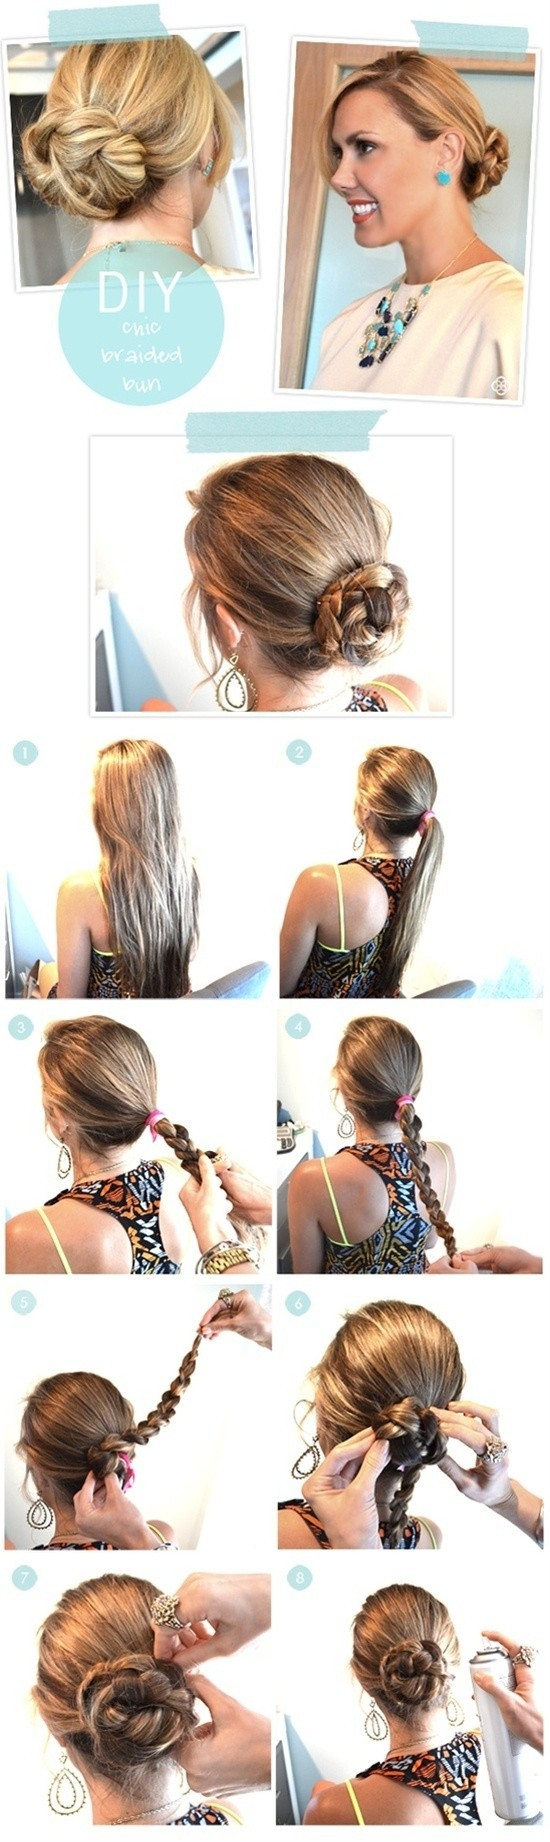 Surprising Step By Step Hairstyles For Long Hair Long Hairstyles Ideas Short Hairstyles For Black Women Fulllsitofus